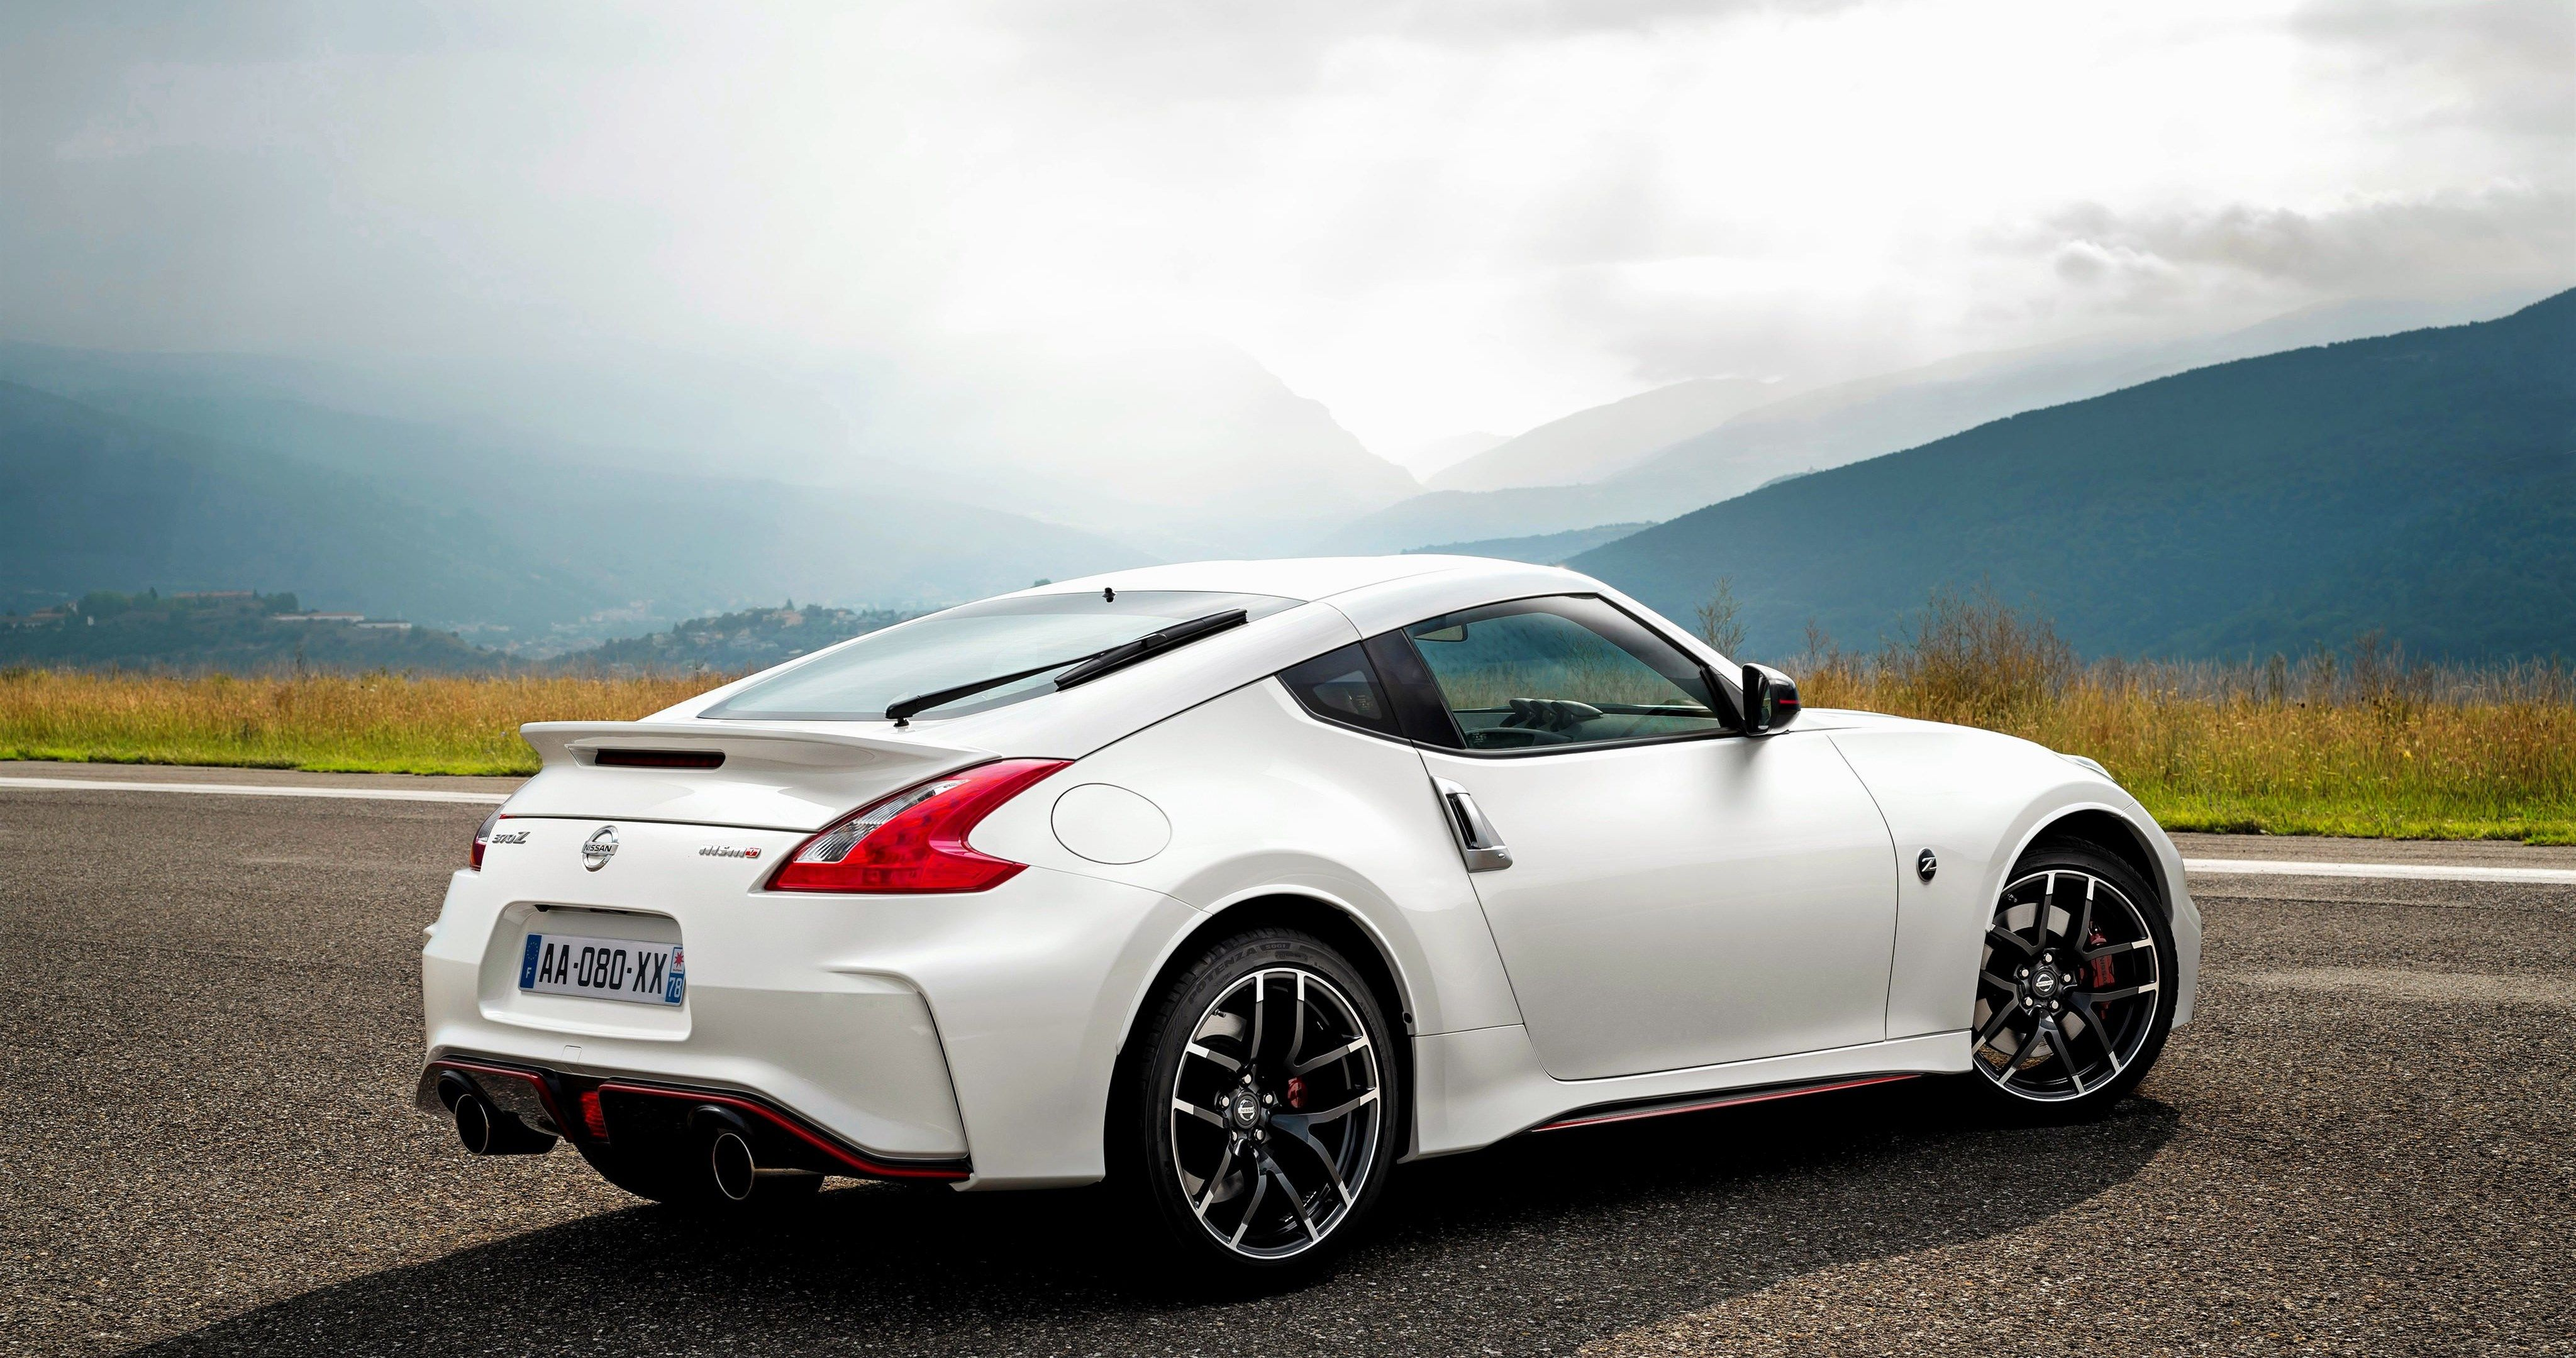 Nissan 370z Nismo 4k Ultra Hd Wallpaper Ololoshenka Pinterest